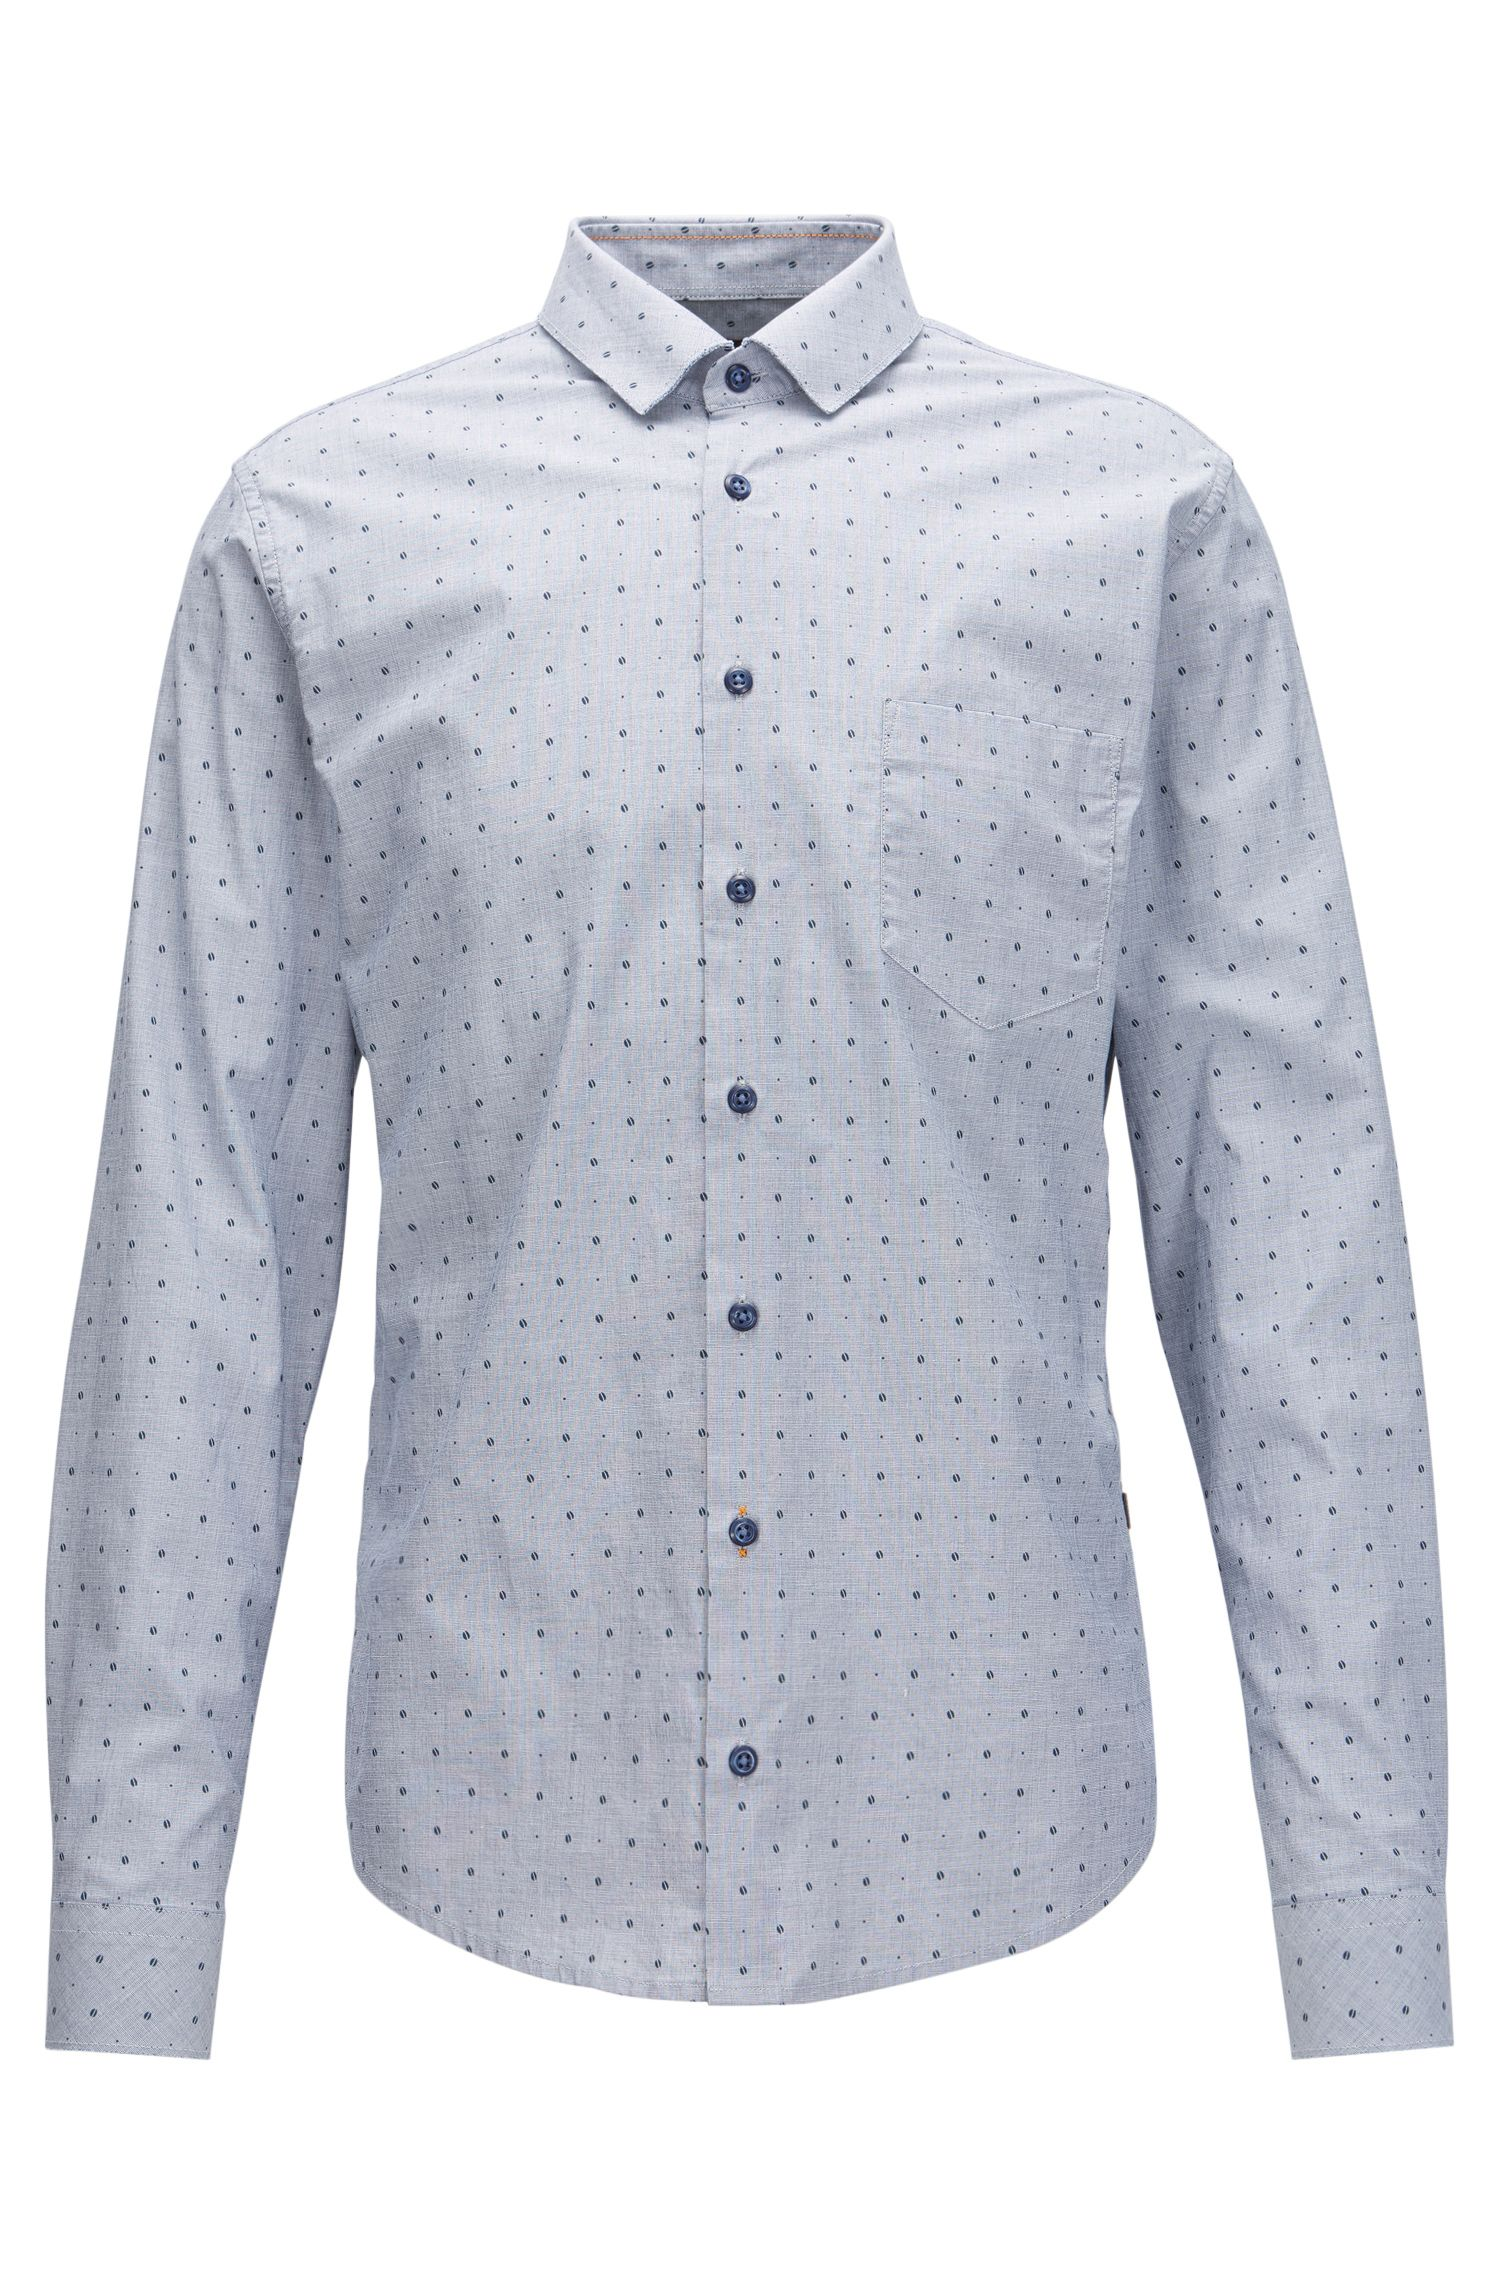 Chemise Slim Fit en coton stretch imprimé, avec bords francs